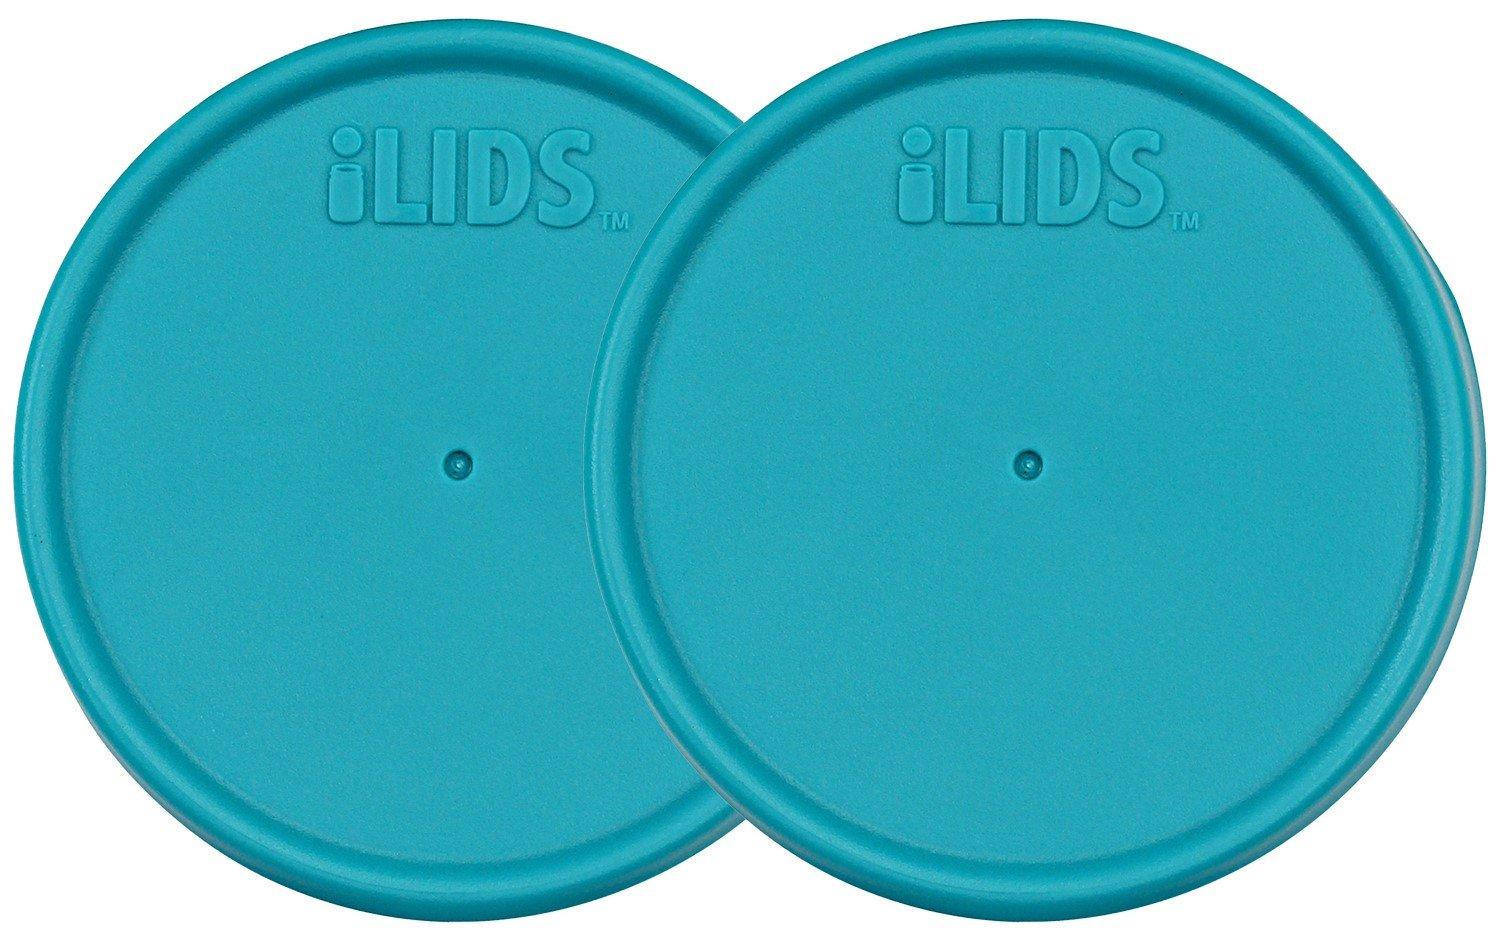 iLIDS Mason Jar Storage Lid, Regular Mouth, BPA Free, Made in the USA, Aqua Blue, 2-Pack